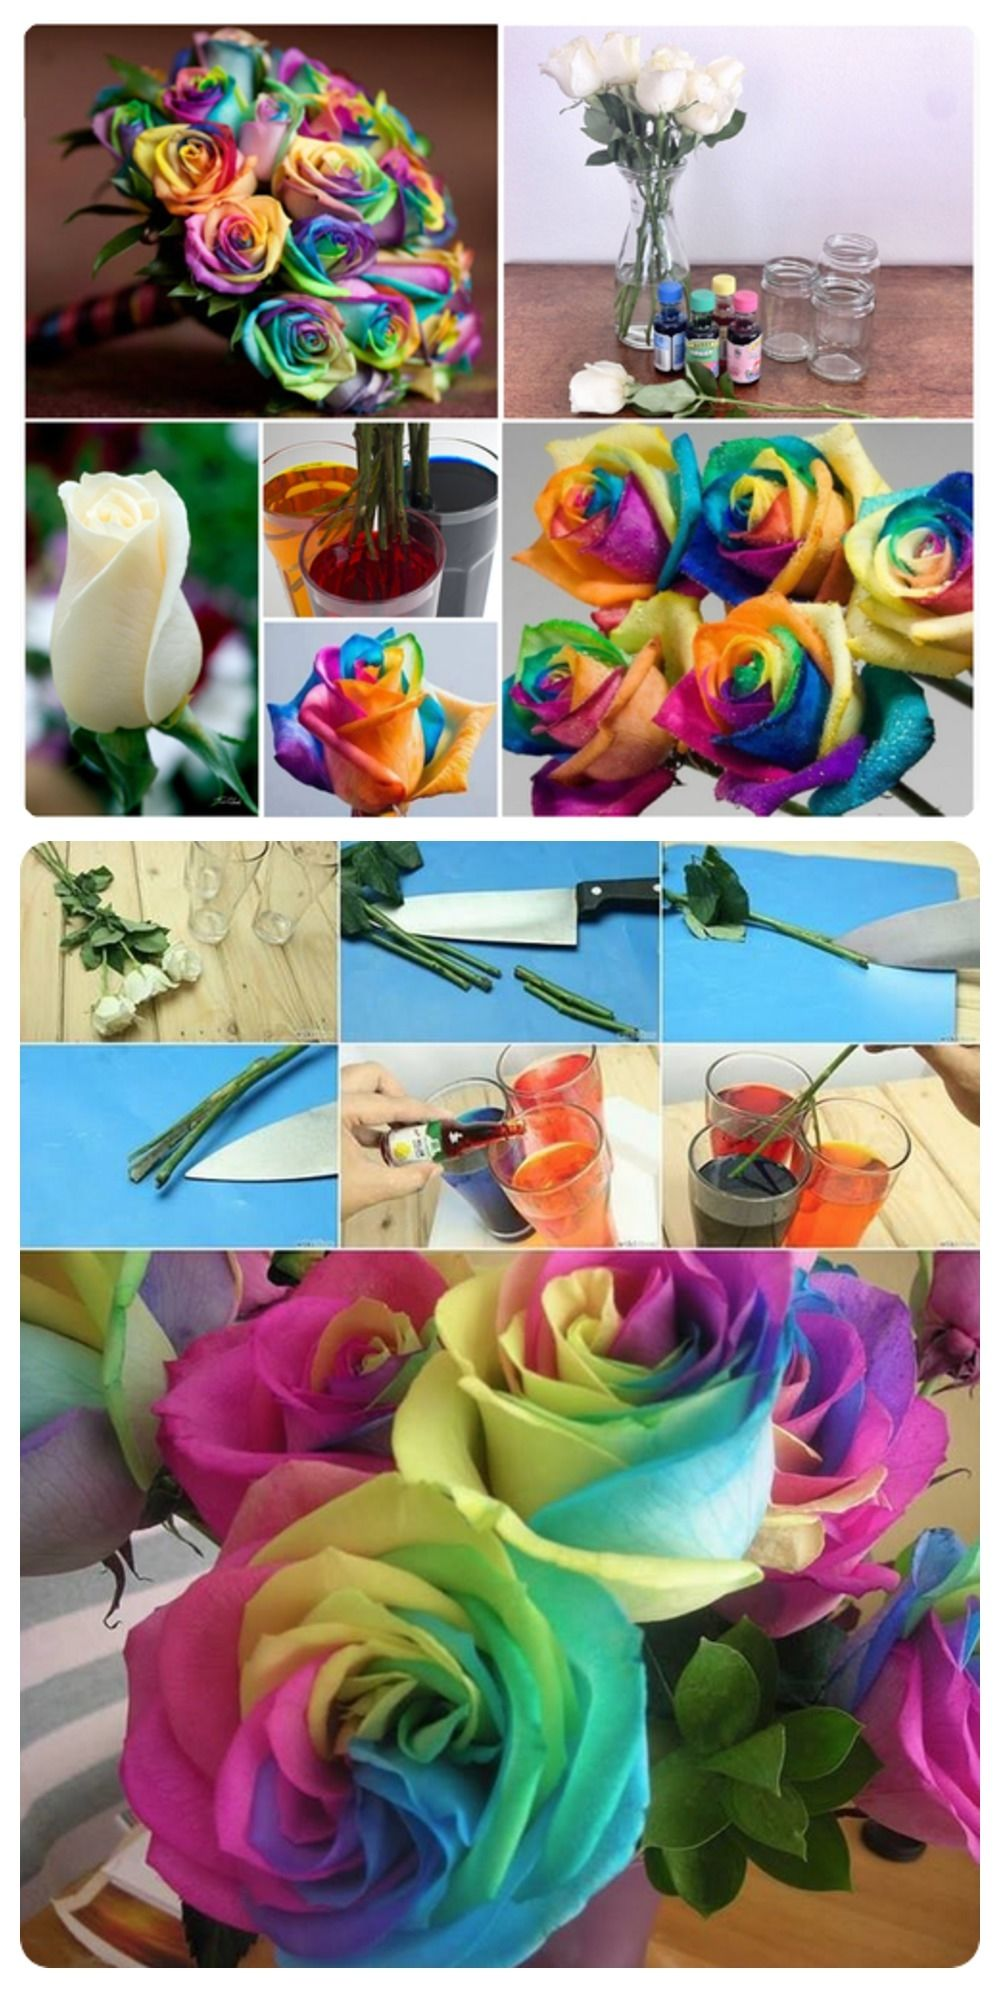 How to make rainbow flowers pictures photos and images for How to make a multicolored rose